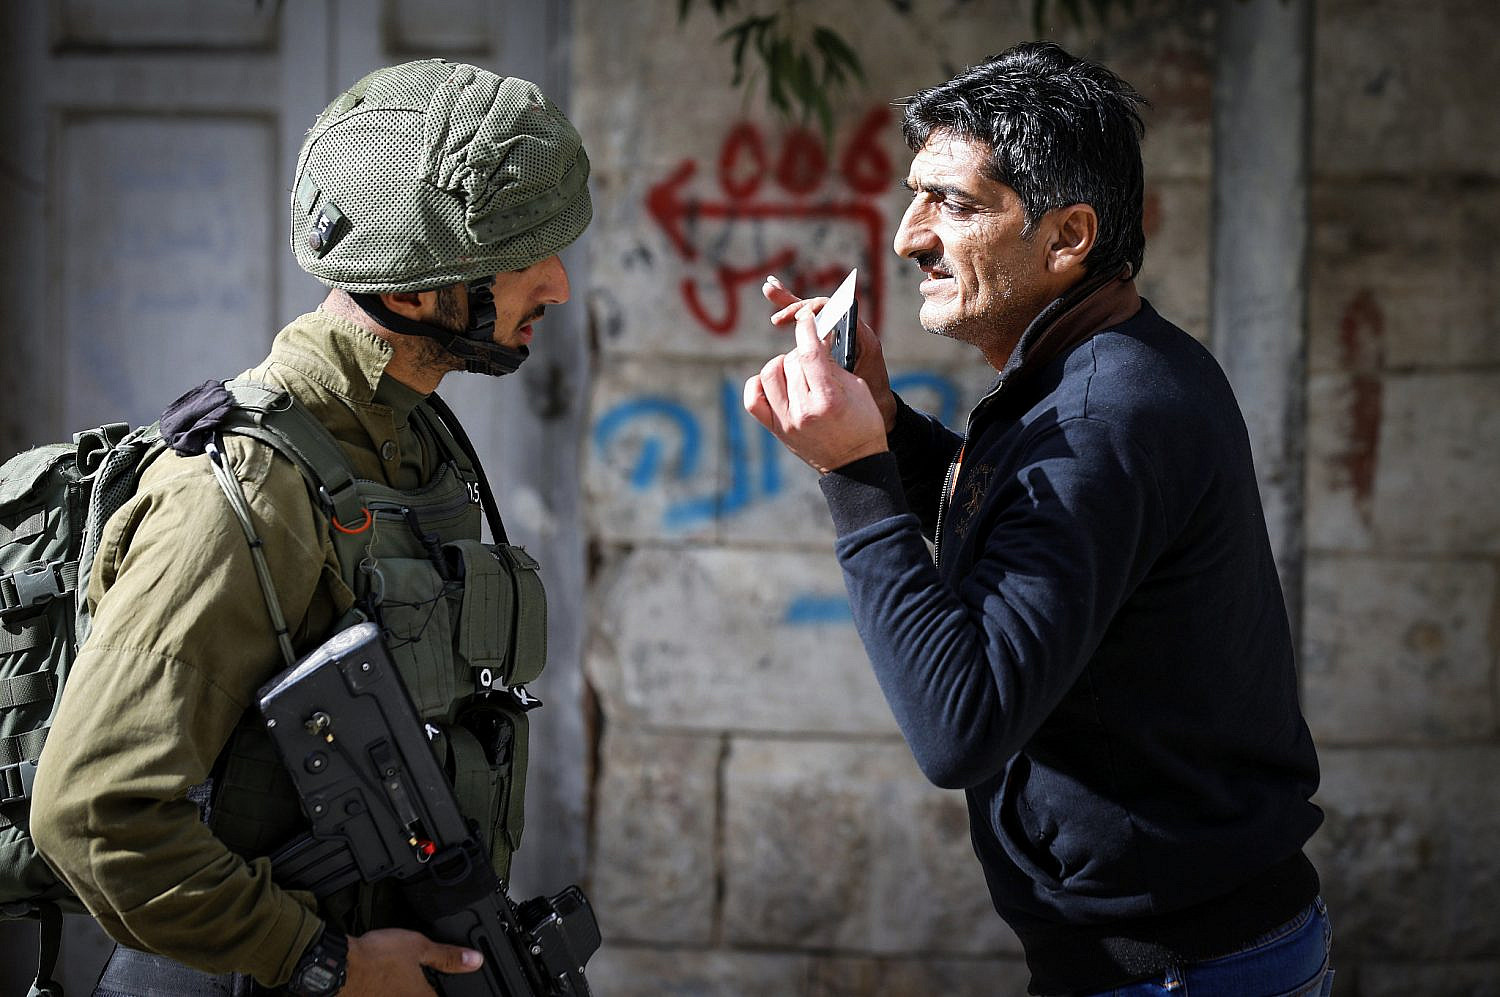 Israeli soldiers speaks with a Palestinian man the Old City of Hebron in the West Bank, Jan. 14, 2018. (Wisam Hashlamoun/Flash90)